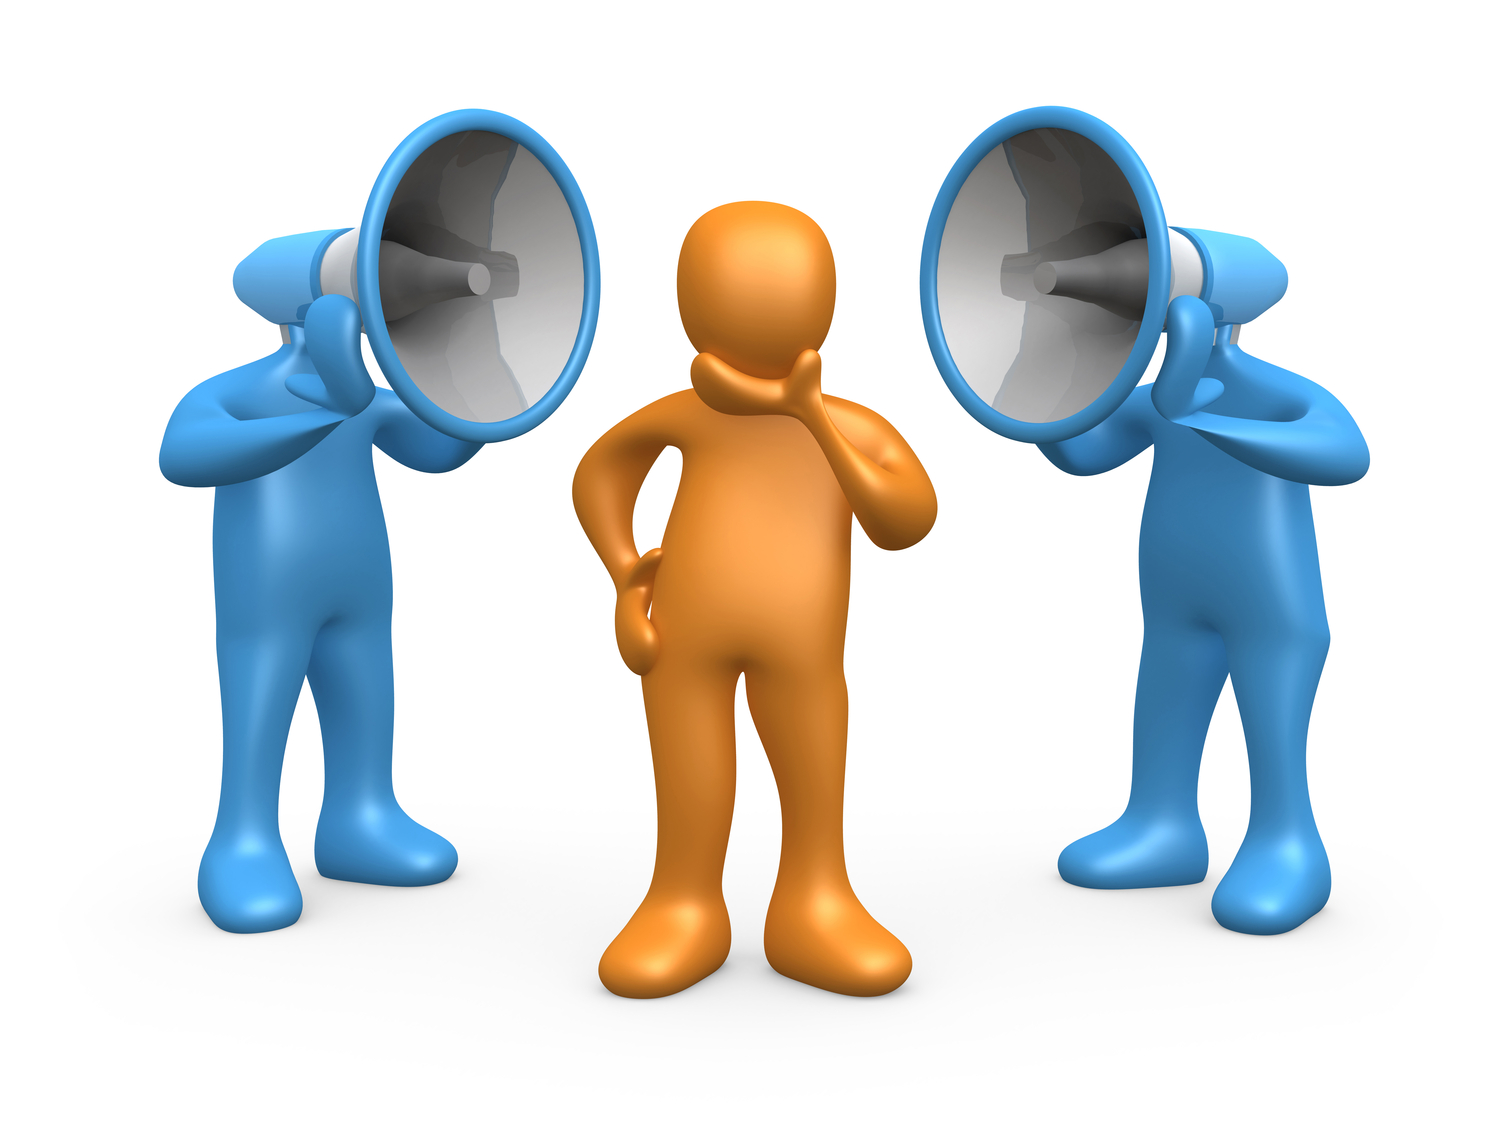 hearing voices groups come to nyc conference call clipart free Teleconference Clip Art